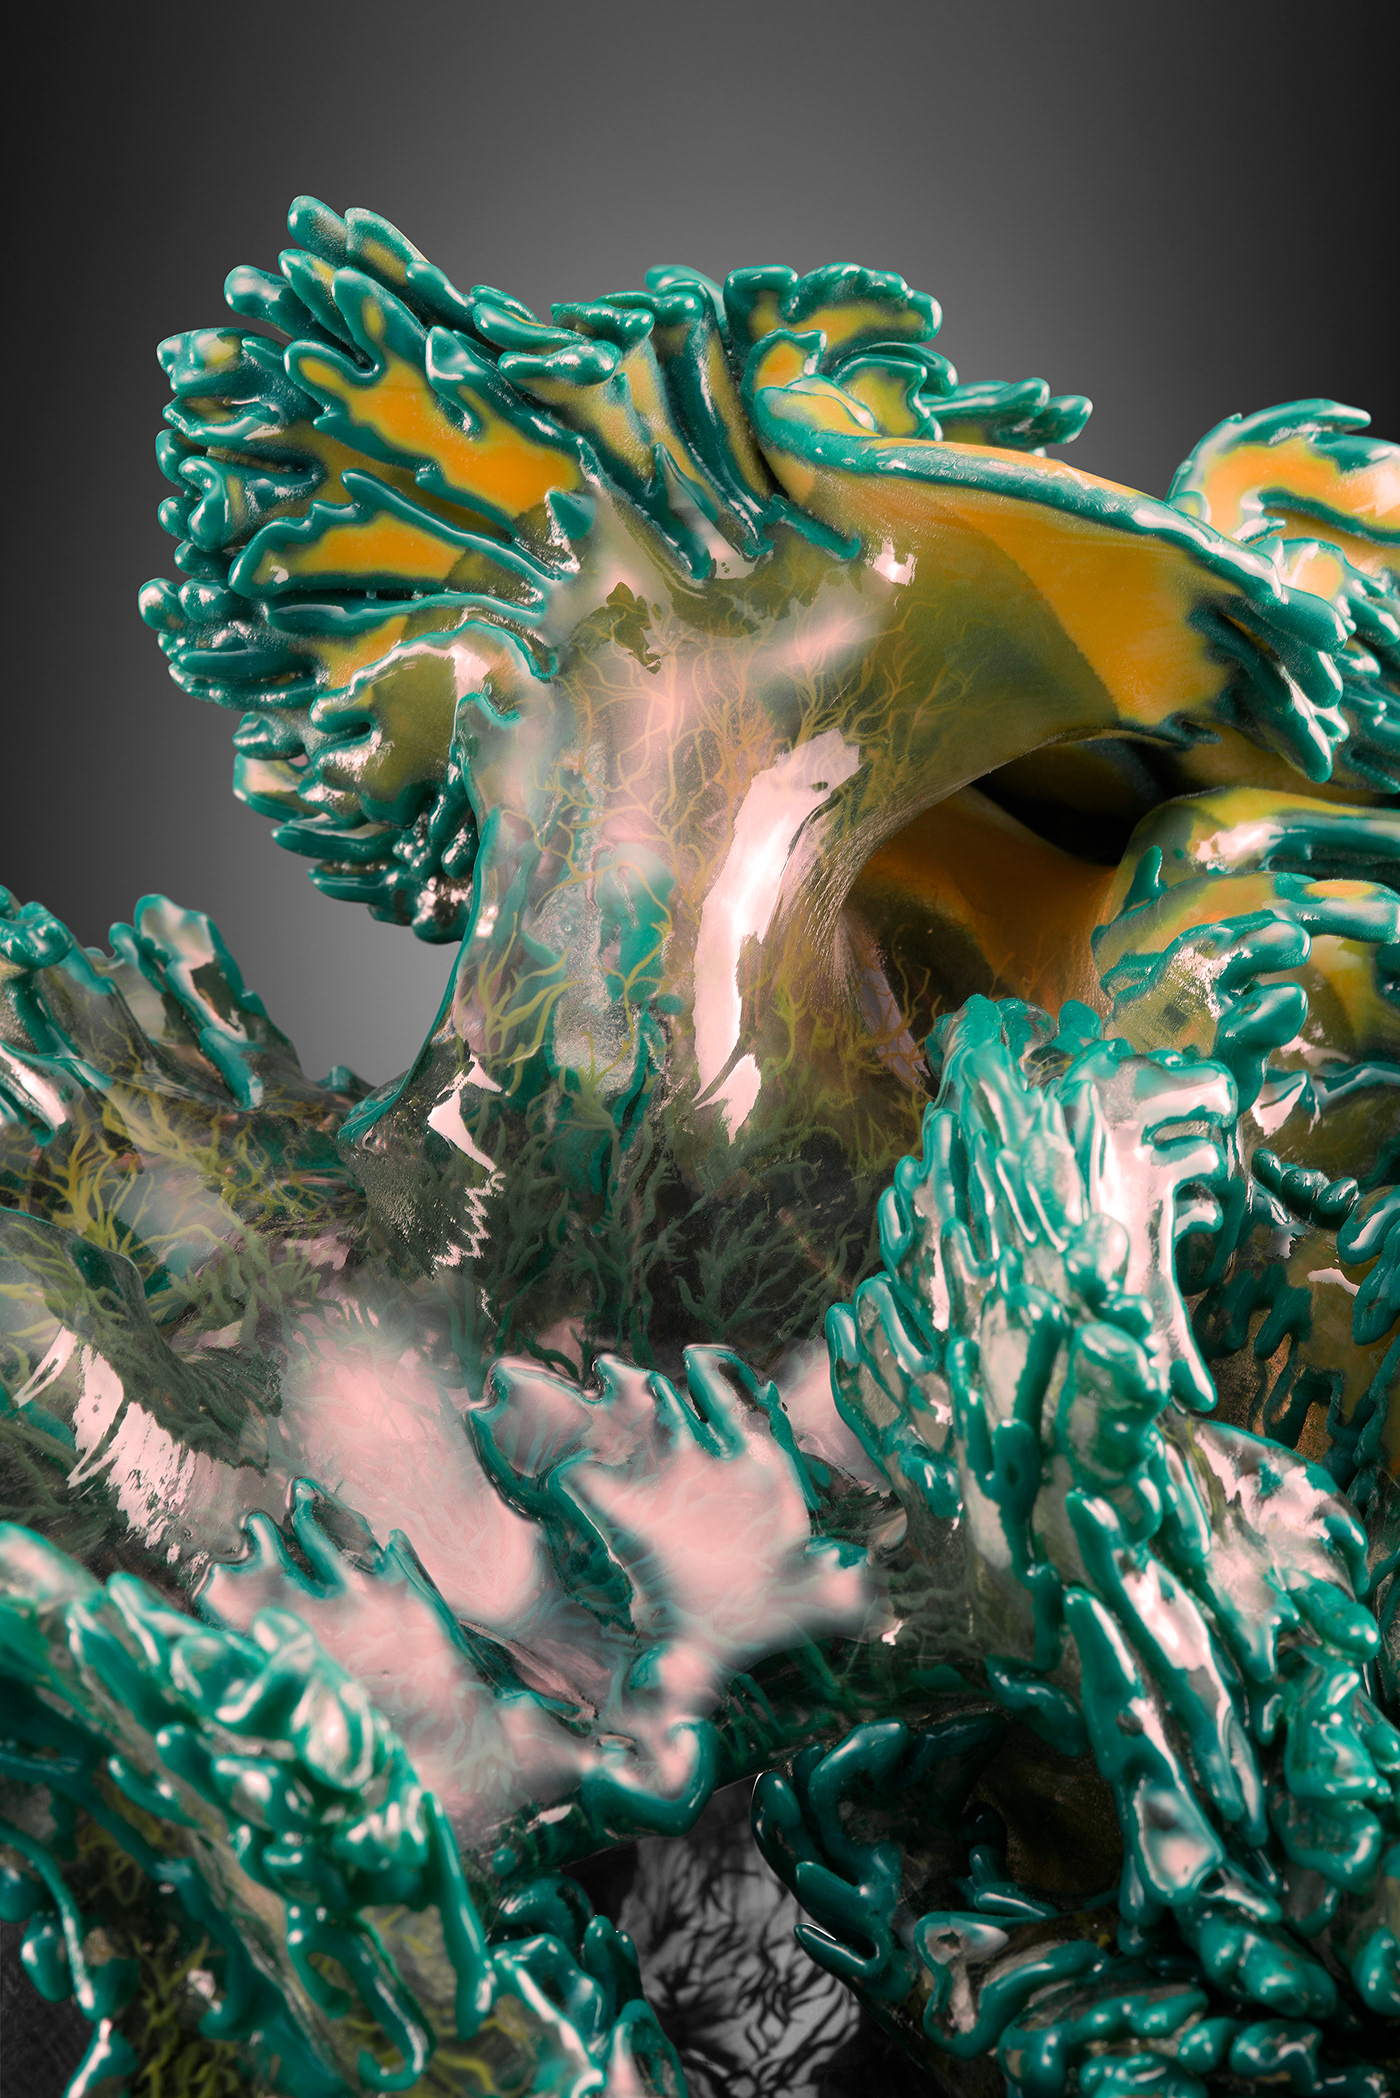 grow growth Growing Structures Neri Oxman MIT Mediated Matter stratasys 3d printing simulation Artifical Life synthetic biology generative art